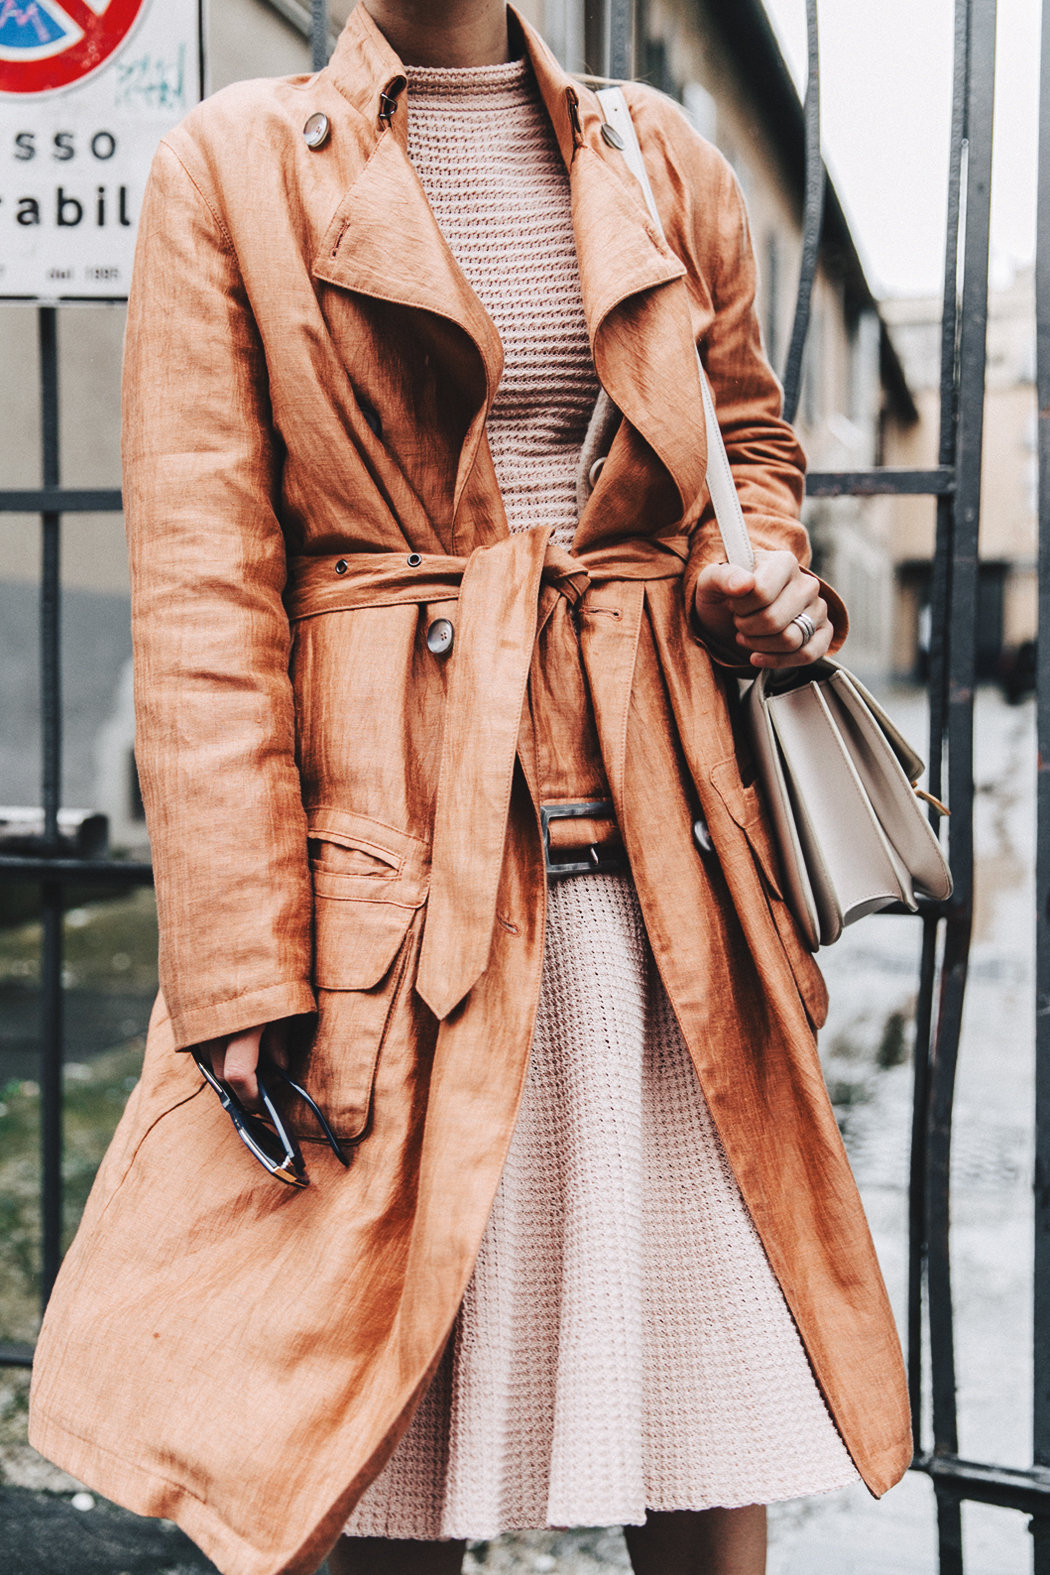 Armani-Trench_Coat-Pink_Dress-Chanel_Slingbacks-Celine_Box_Bag-Outfit-Milan_Fashion_Week-Street_Style-4